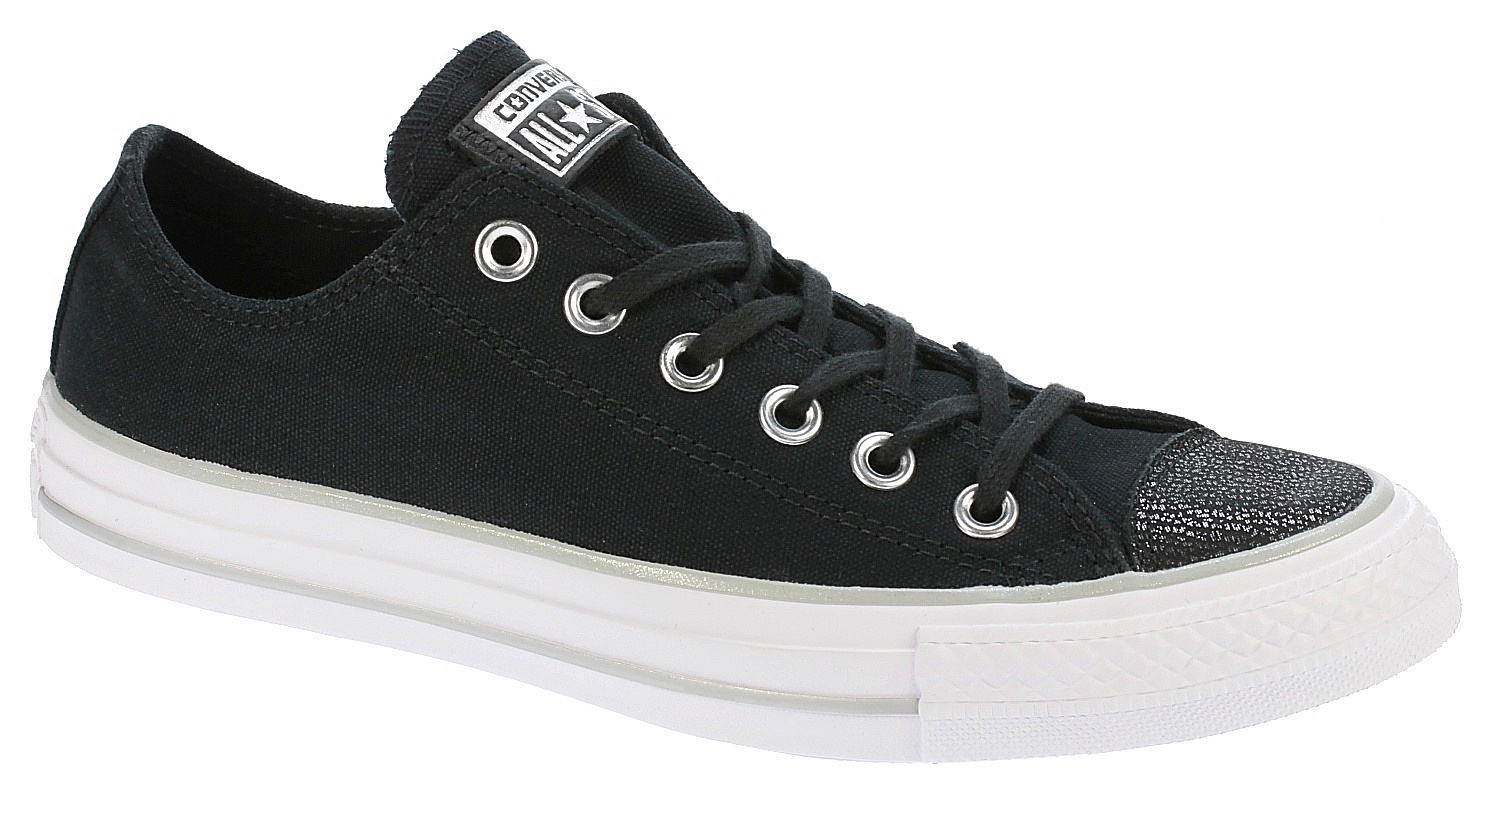 boty Converse Chuck Taylor All Star Tipped Metallic OX -  559887 Black Silver  3e0c548929d